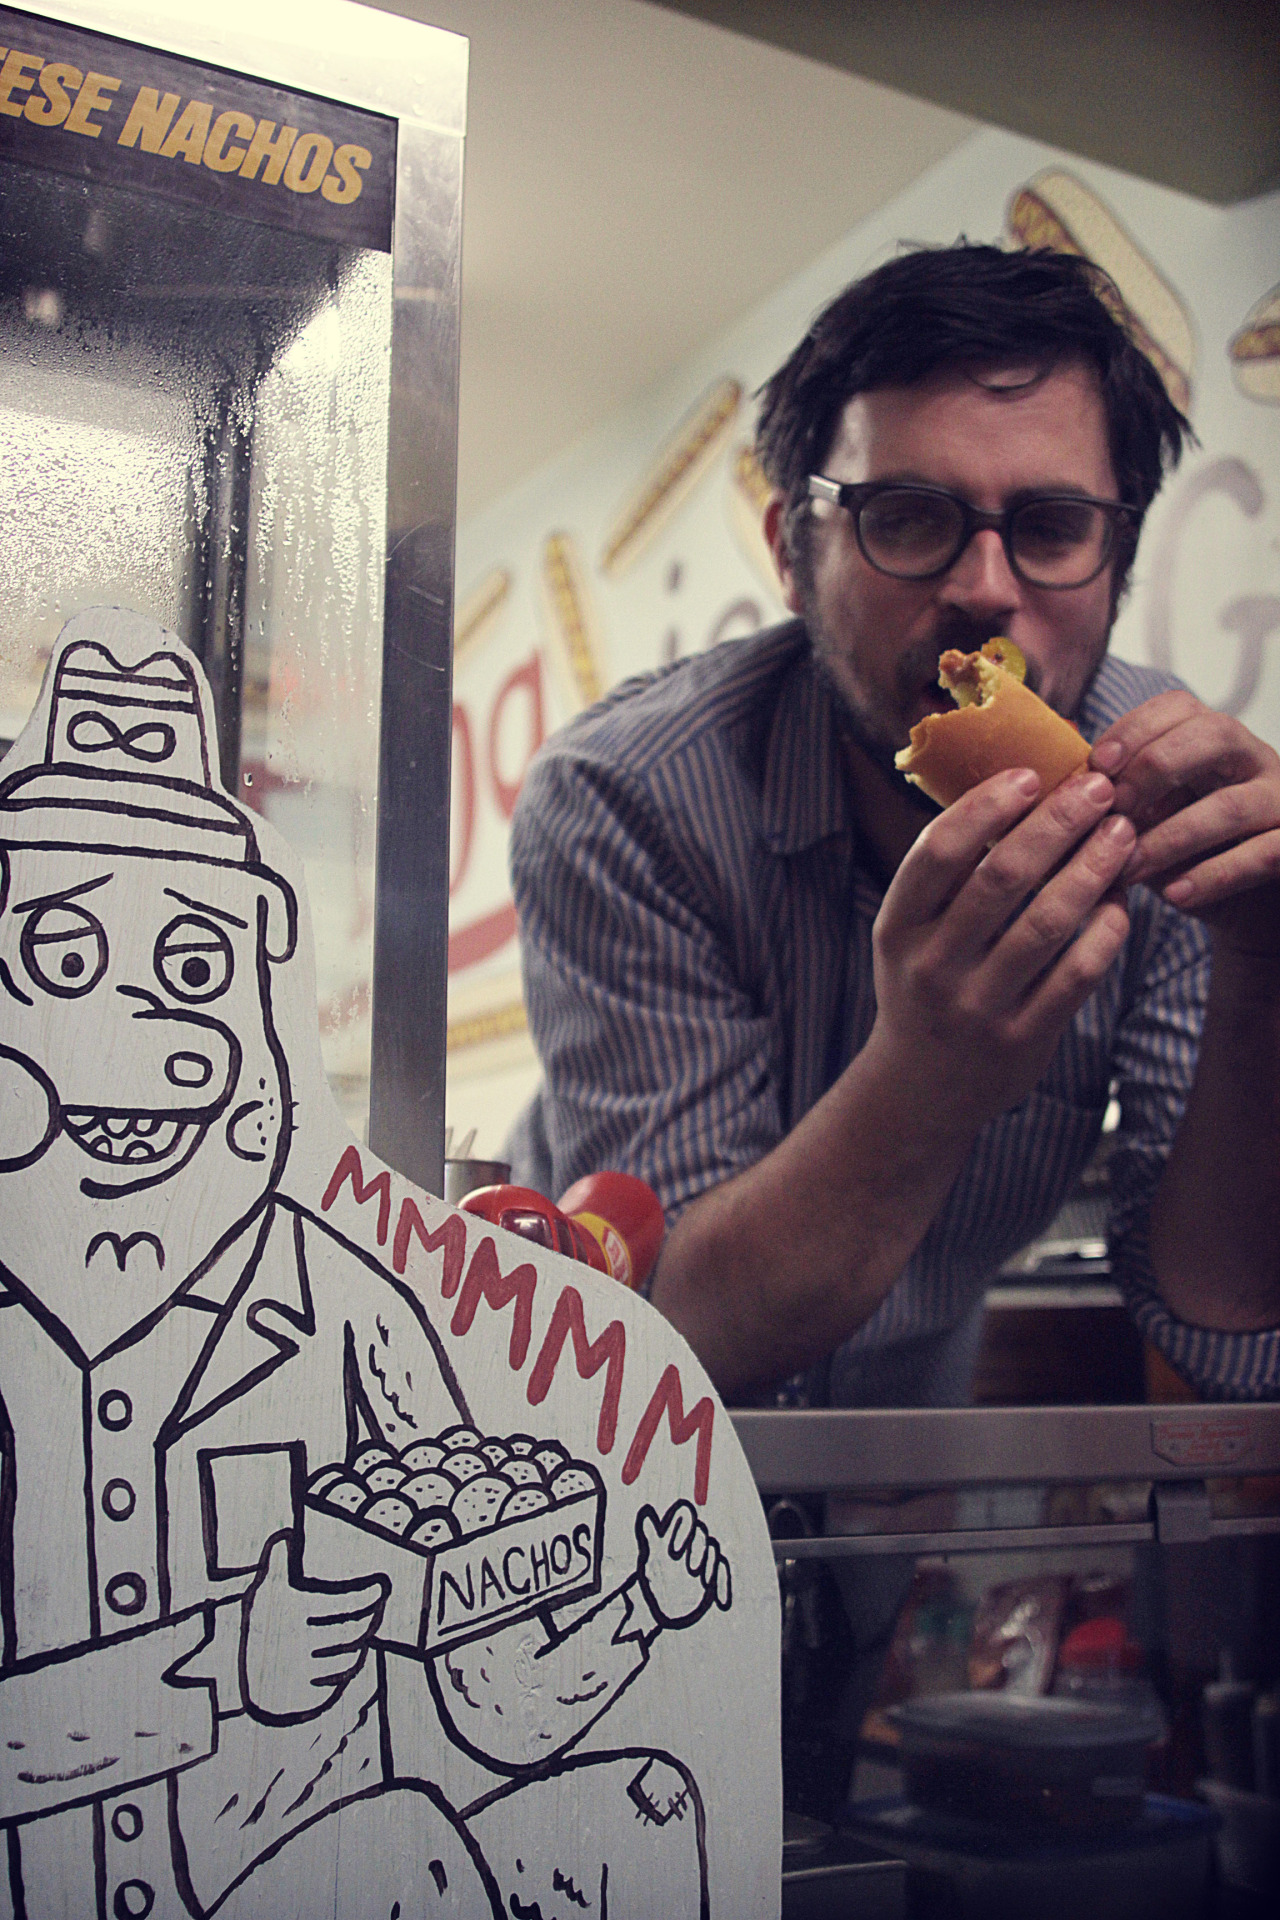 "The Hot 'n Dog: Where Franks & Comics Collide Shorty after 3pm each weekday, kids from two Toronto grade schools hang out at a tiny neighborhood hot-dog joint. This is the Hot 'n Dog, where the specialty is toppings. Lots and lots of toppings. Behind the counter is Keith Jones, a cartoonist (and hot dog connoisseur) responsible for graphic novels like dystopian pet epic Catland Empire and abstract-ish activity book Colour Me Busy. Jones loves comics, frumpy cartoon animals and filling up spaces — interests that synced with a Toronto entrepreneur who, a year ago, decided to open a hot dog shop. Now co-owner, Jones is dressing $2 hot dogs with comic artistry, along with toppings (100 of them in all) that range from wasabi to flaxseed to rainbow sprinkles. We asked Jones about renovations, post-apocalyptic BBQ cars and, of course, hot dogs. This is kind of an odd place for a comic artist to end up. Do you have any particular feelings toward hot dogs? I think hot dogs are hilarious. As a kid, they were one of my favorite foods. I like that you can decorate them, just put junk on them. A hundred different things. I made a great dessert dog just the other day. It had two different kinds of jam, chocolate chips, marshmallows, pretzels and bacon bits, maple syrup. Then I mixed in Hickory Sticks and graham crackers. It looked insane. Also I made a chili cheese dog with 10 different things on it for fun. Supposedly, there are kids who have come in here and gotten all 100 toppings on their hot dogs. I haven't done that yet. [[MORE]] How did you come to run the Hot 'n Dog? I met George Karpouzis when he opened up a comic book shop in Kensington. I hung out at that comic book shop all the time. He was trying to sell the Hot 'n Dog to somebody else, but that didn't work out. I woke up one day thinking, ""I should own that."" So I just went and asked him. I wanted this place to look like a cartoon-land. He knew what I wanted to do with it, and that made him excited to have me. Is it true you enjoy filling spaces like this? Oh yeah. I don't know why, it's obsessive to me. Might be an insecurity, I don't know, but it's fun! I've done a couple spaces like this before, redecorated a bar and had some gallery shows. Usually I come in and I don't know what I'm doing, start with a couple things and new ideas flourish. I remember when I came up with ""My Hot Dog is Bigger Than Yours."" I was just staring at this white empty space wondering how the hell I'm going to fill that in. I came up with that line and just laughed for about a half-hour. Great ideas lead to more ideas. I want to make those rotor fan blades up on the ceiling hot dogs. That's an idea I just came up with. And you're selling comics here too? Yeah, I just brought in a couple comics that I made, to sell. I'm actually going to make a newspaper called Hot Dog Times. It'll have different cartoonists from all over doing hot dog-themed things. Articles all about hot dogs. I've talked to five or six artists who want to do stuff. What do you like about drawing rude animals? I don't know, it just happens that way. I just think they're weird. I like cartoon characters, but I want them to be doing things that cartoon characters don't usually do, like swearing and throwing junk around and drinking alcohol. What do you foresee in the future of Hot 'n Dog? Well, I want to get karaoke going in here. My goal is by the end of the summer is to buy a 1986 Chevrolet Caprice and jack it up on dump truck wheels and take all the chrome off of it and paint it with Tremclad, flat red, gut the whole interior, make it yellow, get an old school bus steering wheel, take the trunk, open it, turn it into a Hibachi BBQ and write ""All Dogs Go to Heaven"" on the side. Just a weird Mad Max BBQ car. Were you a fan of Pee Wee's Playhouse growing up? The colour scheme in here seems Gary Panter-ish. Oh yeah. It's one of my most favourite shows ever. Actually, I wanted to play it in here but the TV broke. It'll be a regular thing that'll be on here. It's like playtime. Playtime in Dumboland. That's what hot dogs are, they're Dumboland food. — Zack Kotzer"